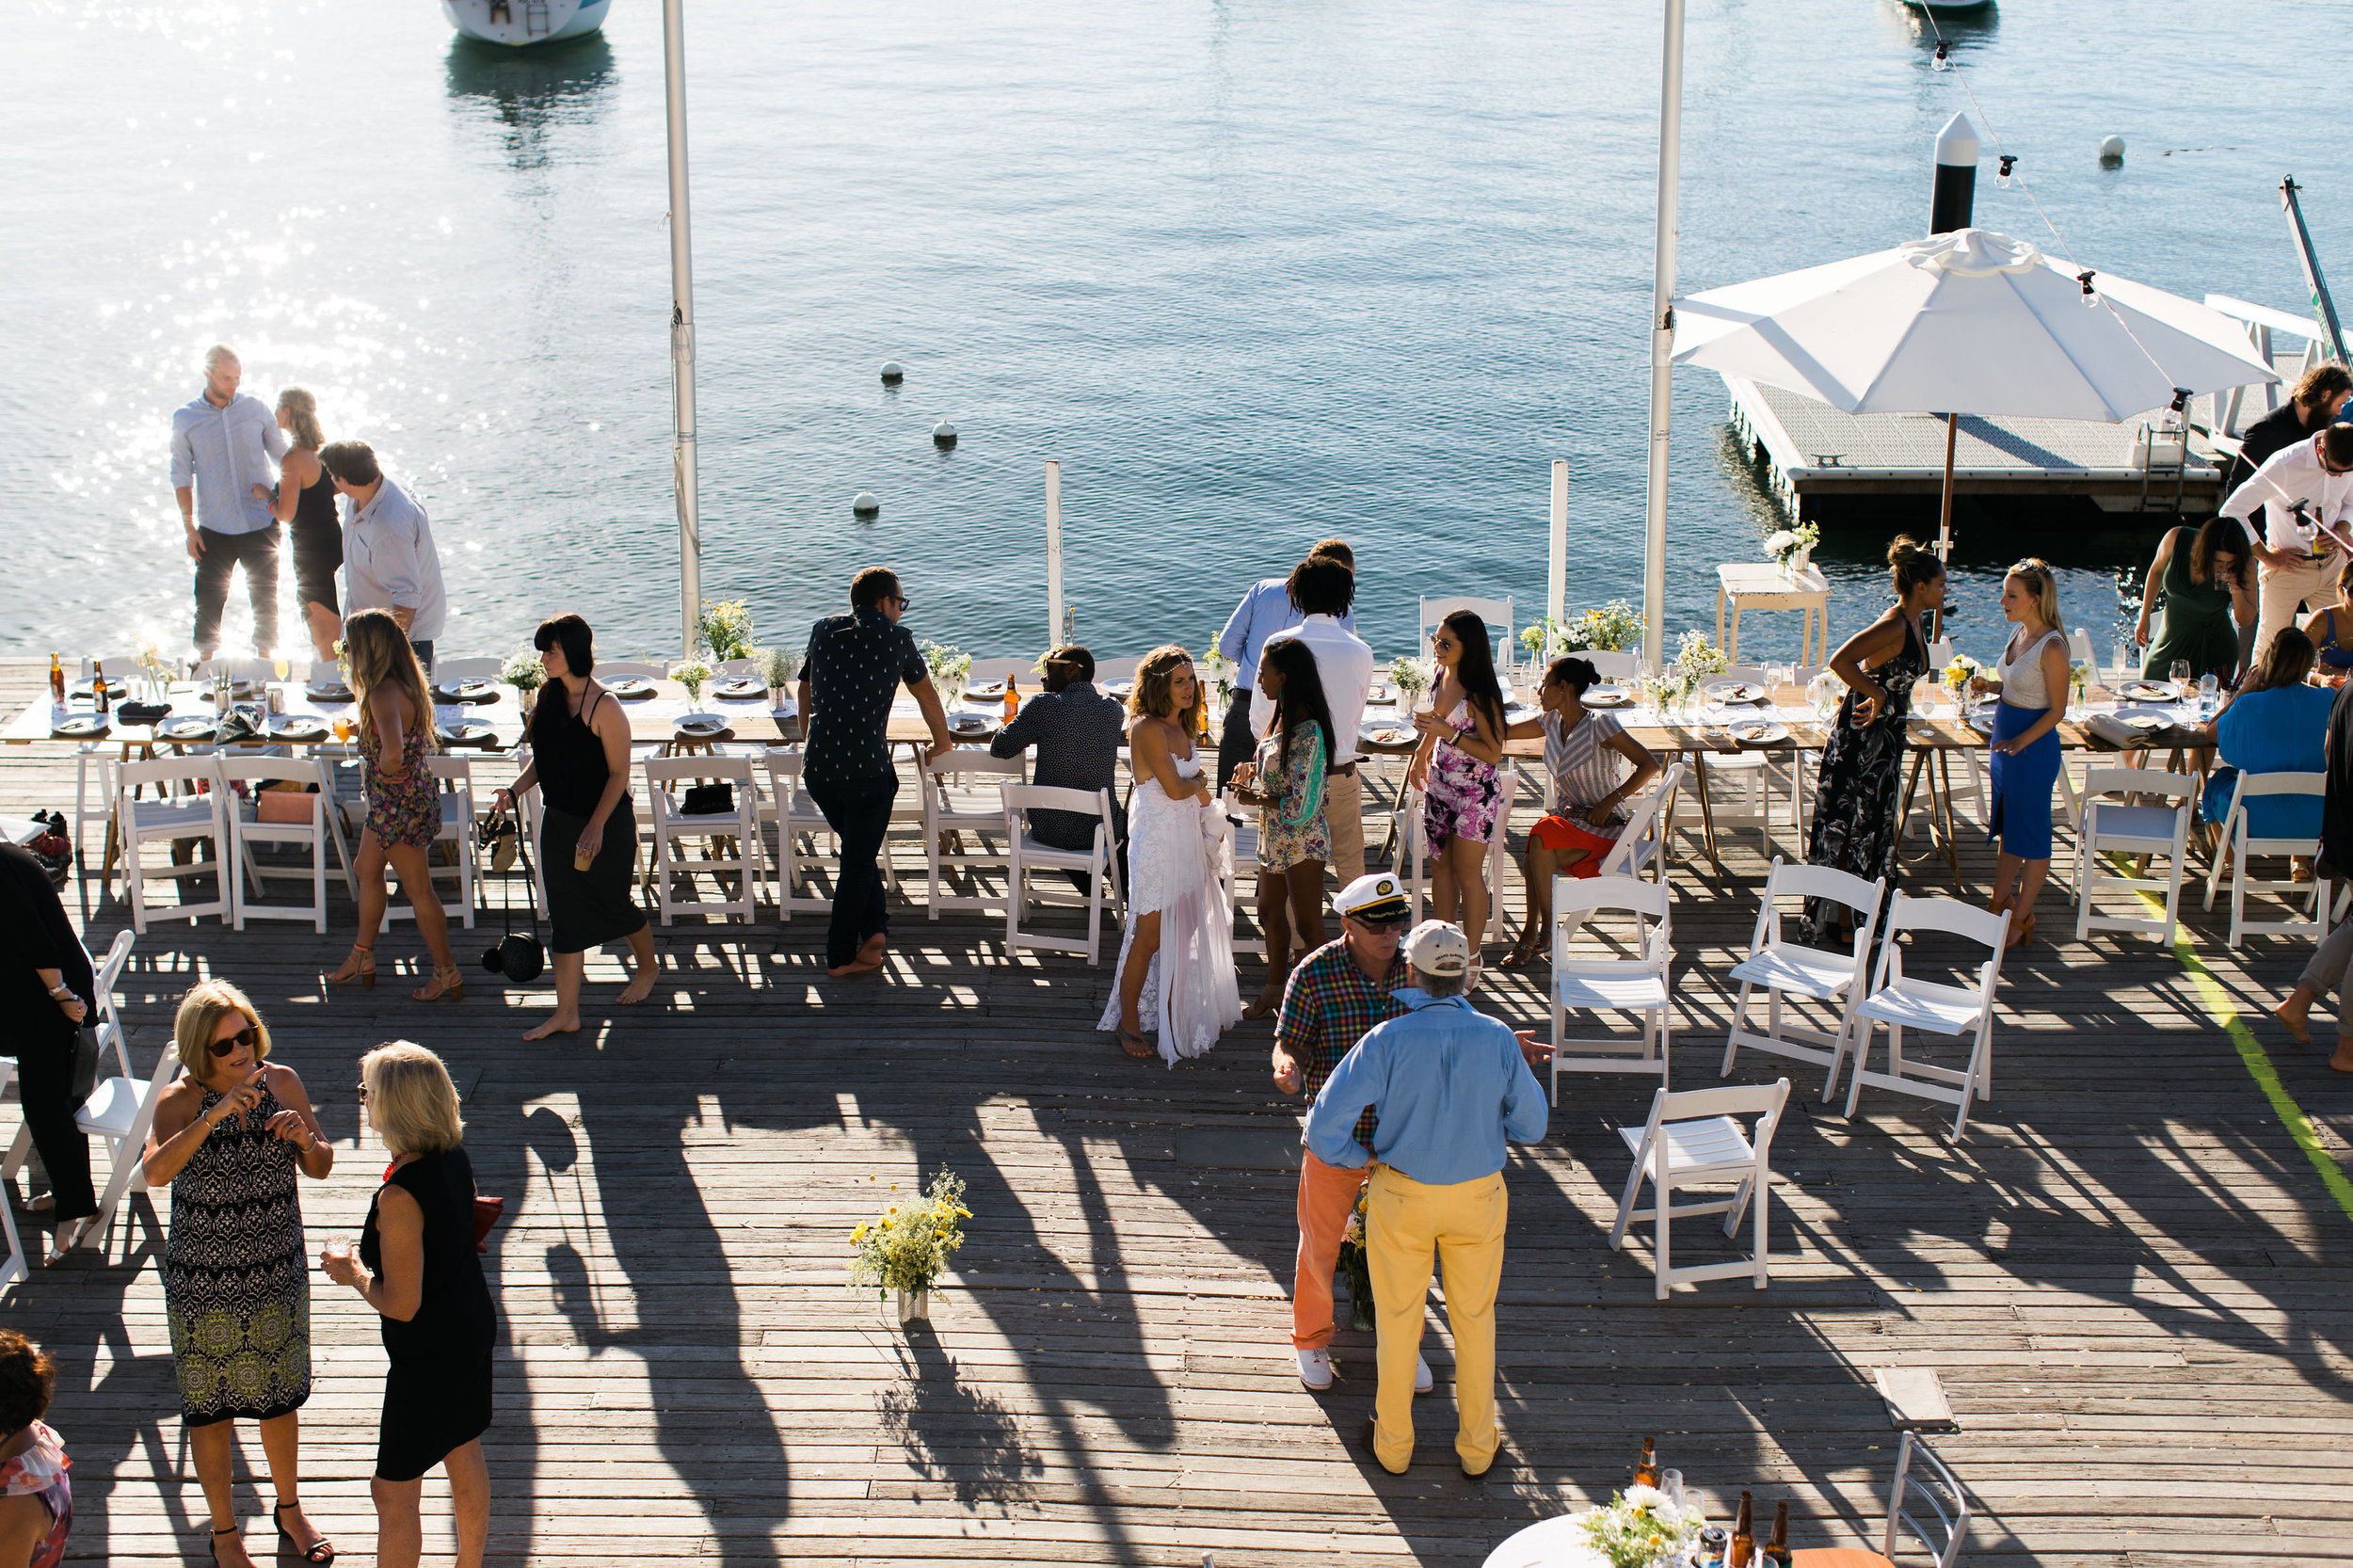 avalon sailing club wedding00007.jpg